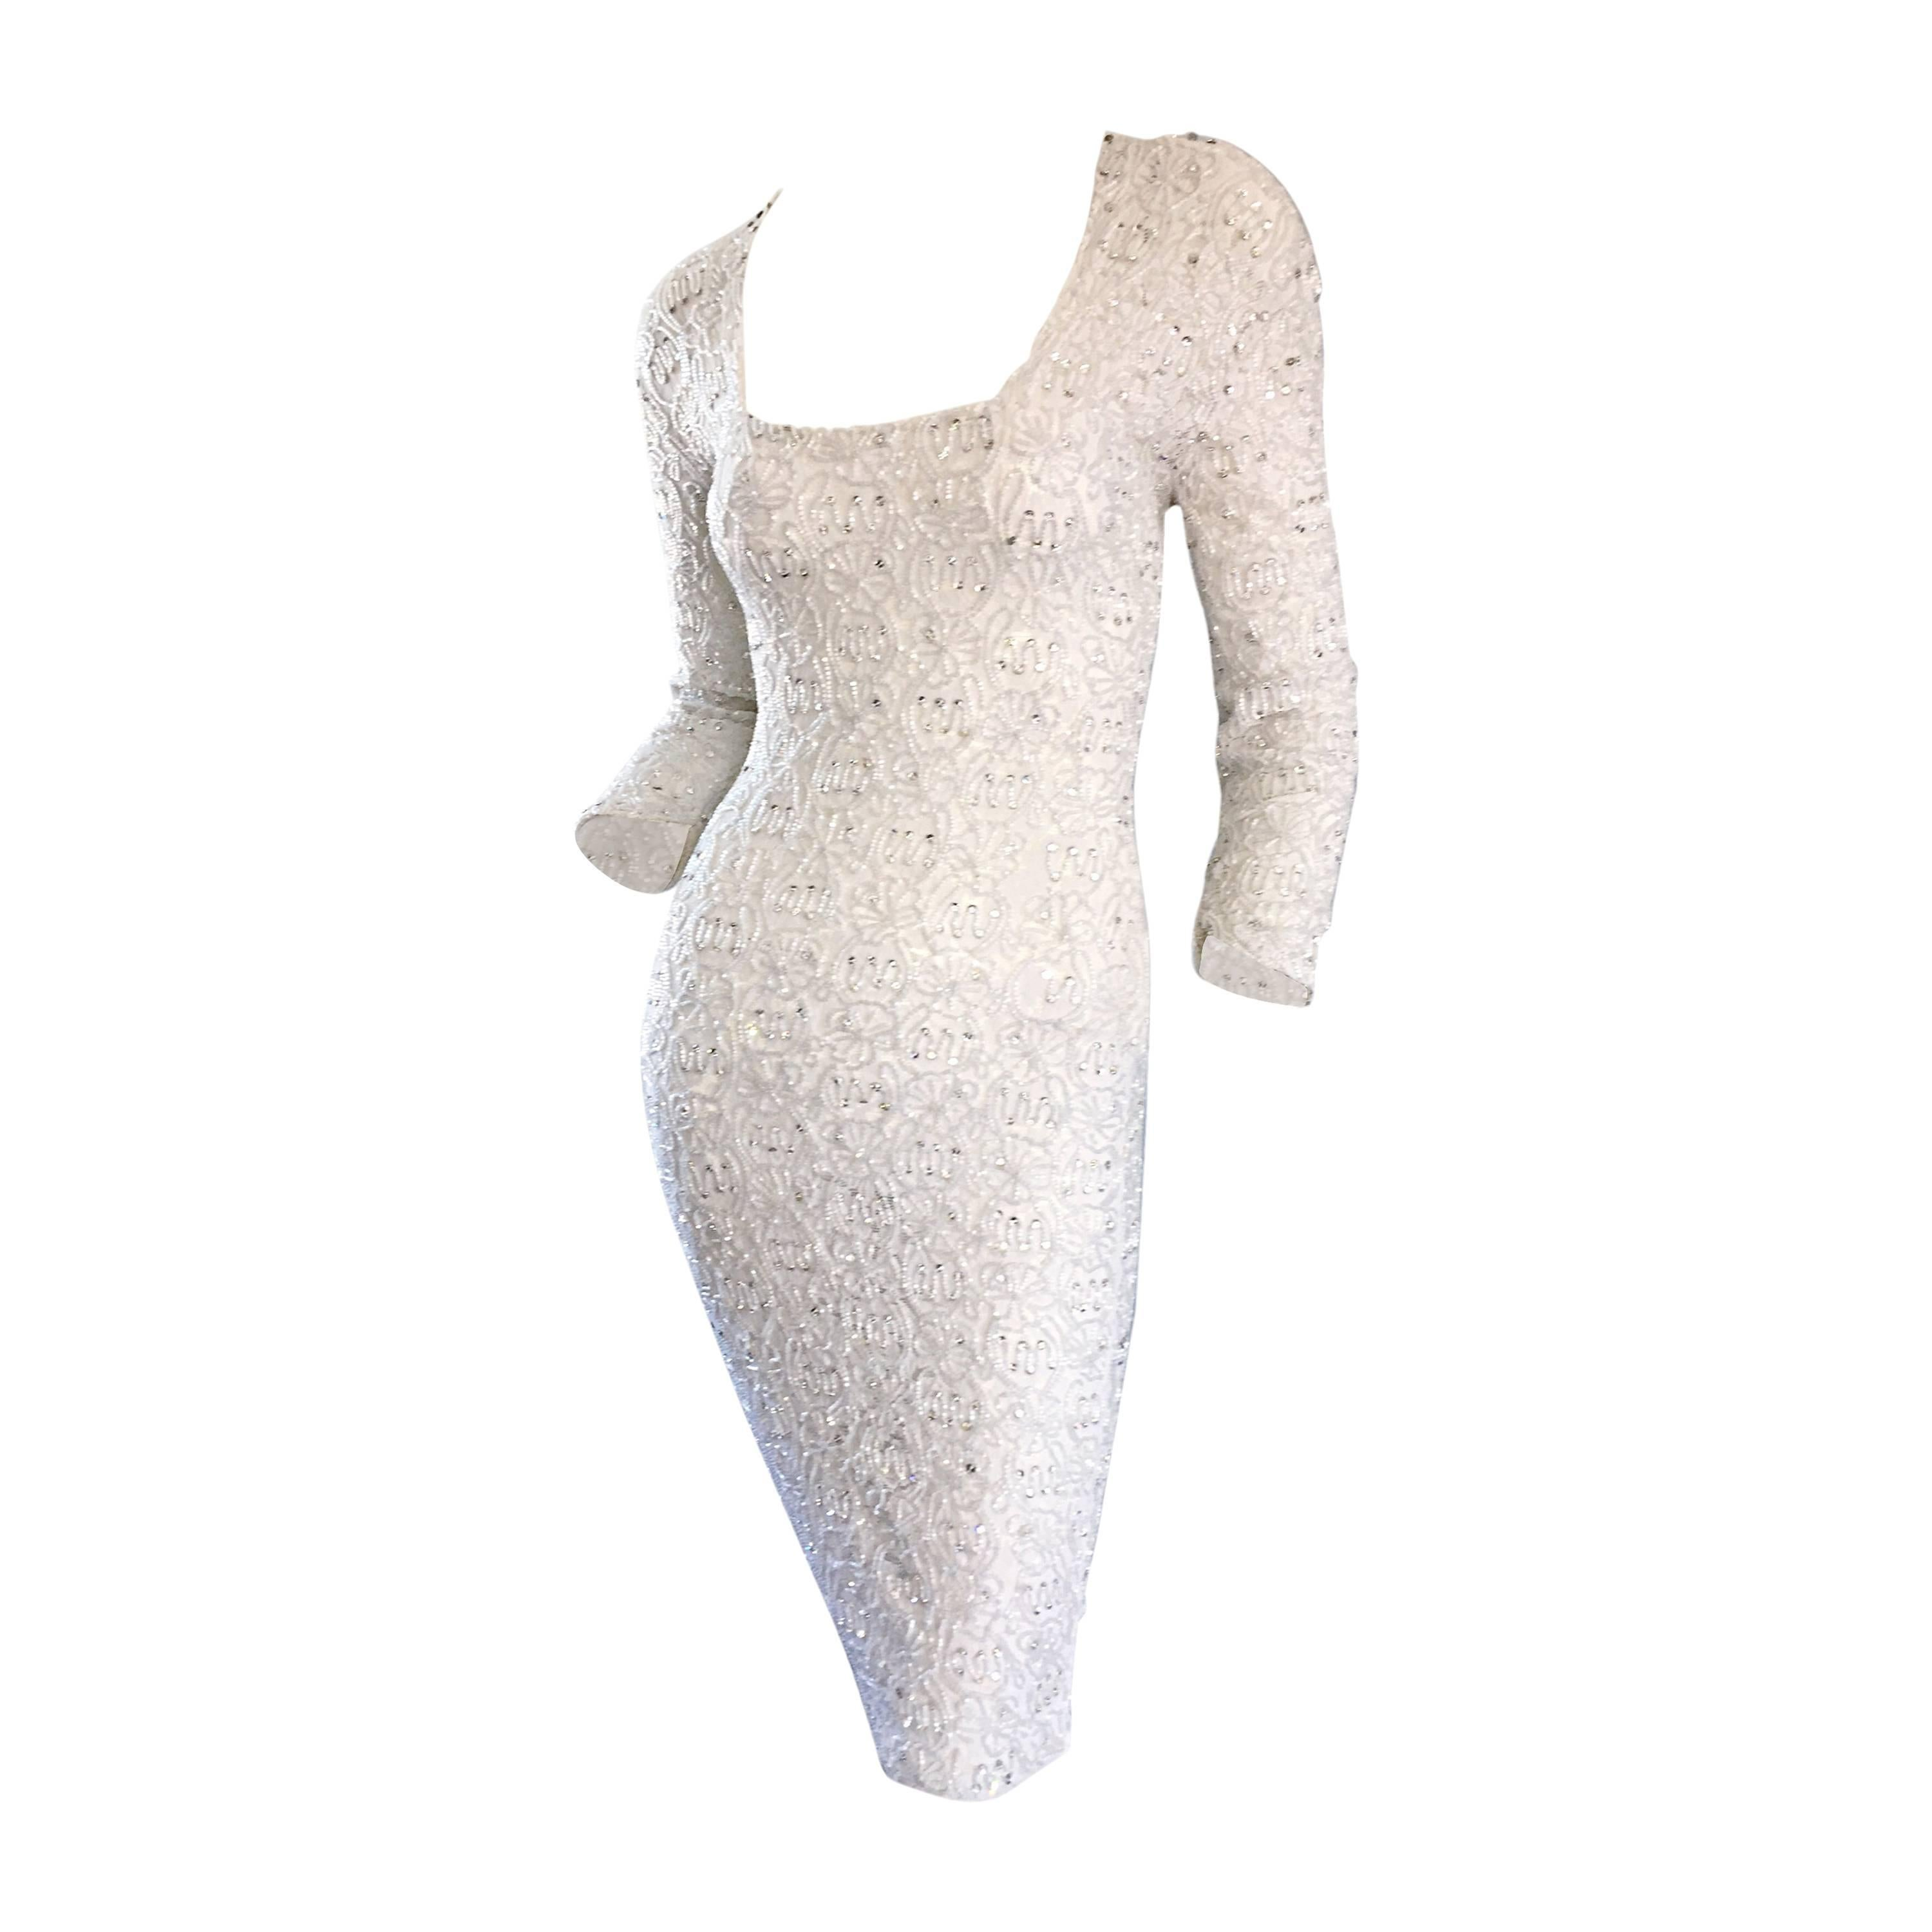 Incredible Vintage Giorgio di Sant Angelo 80s White Fully Beaded Bodycon Dress